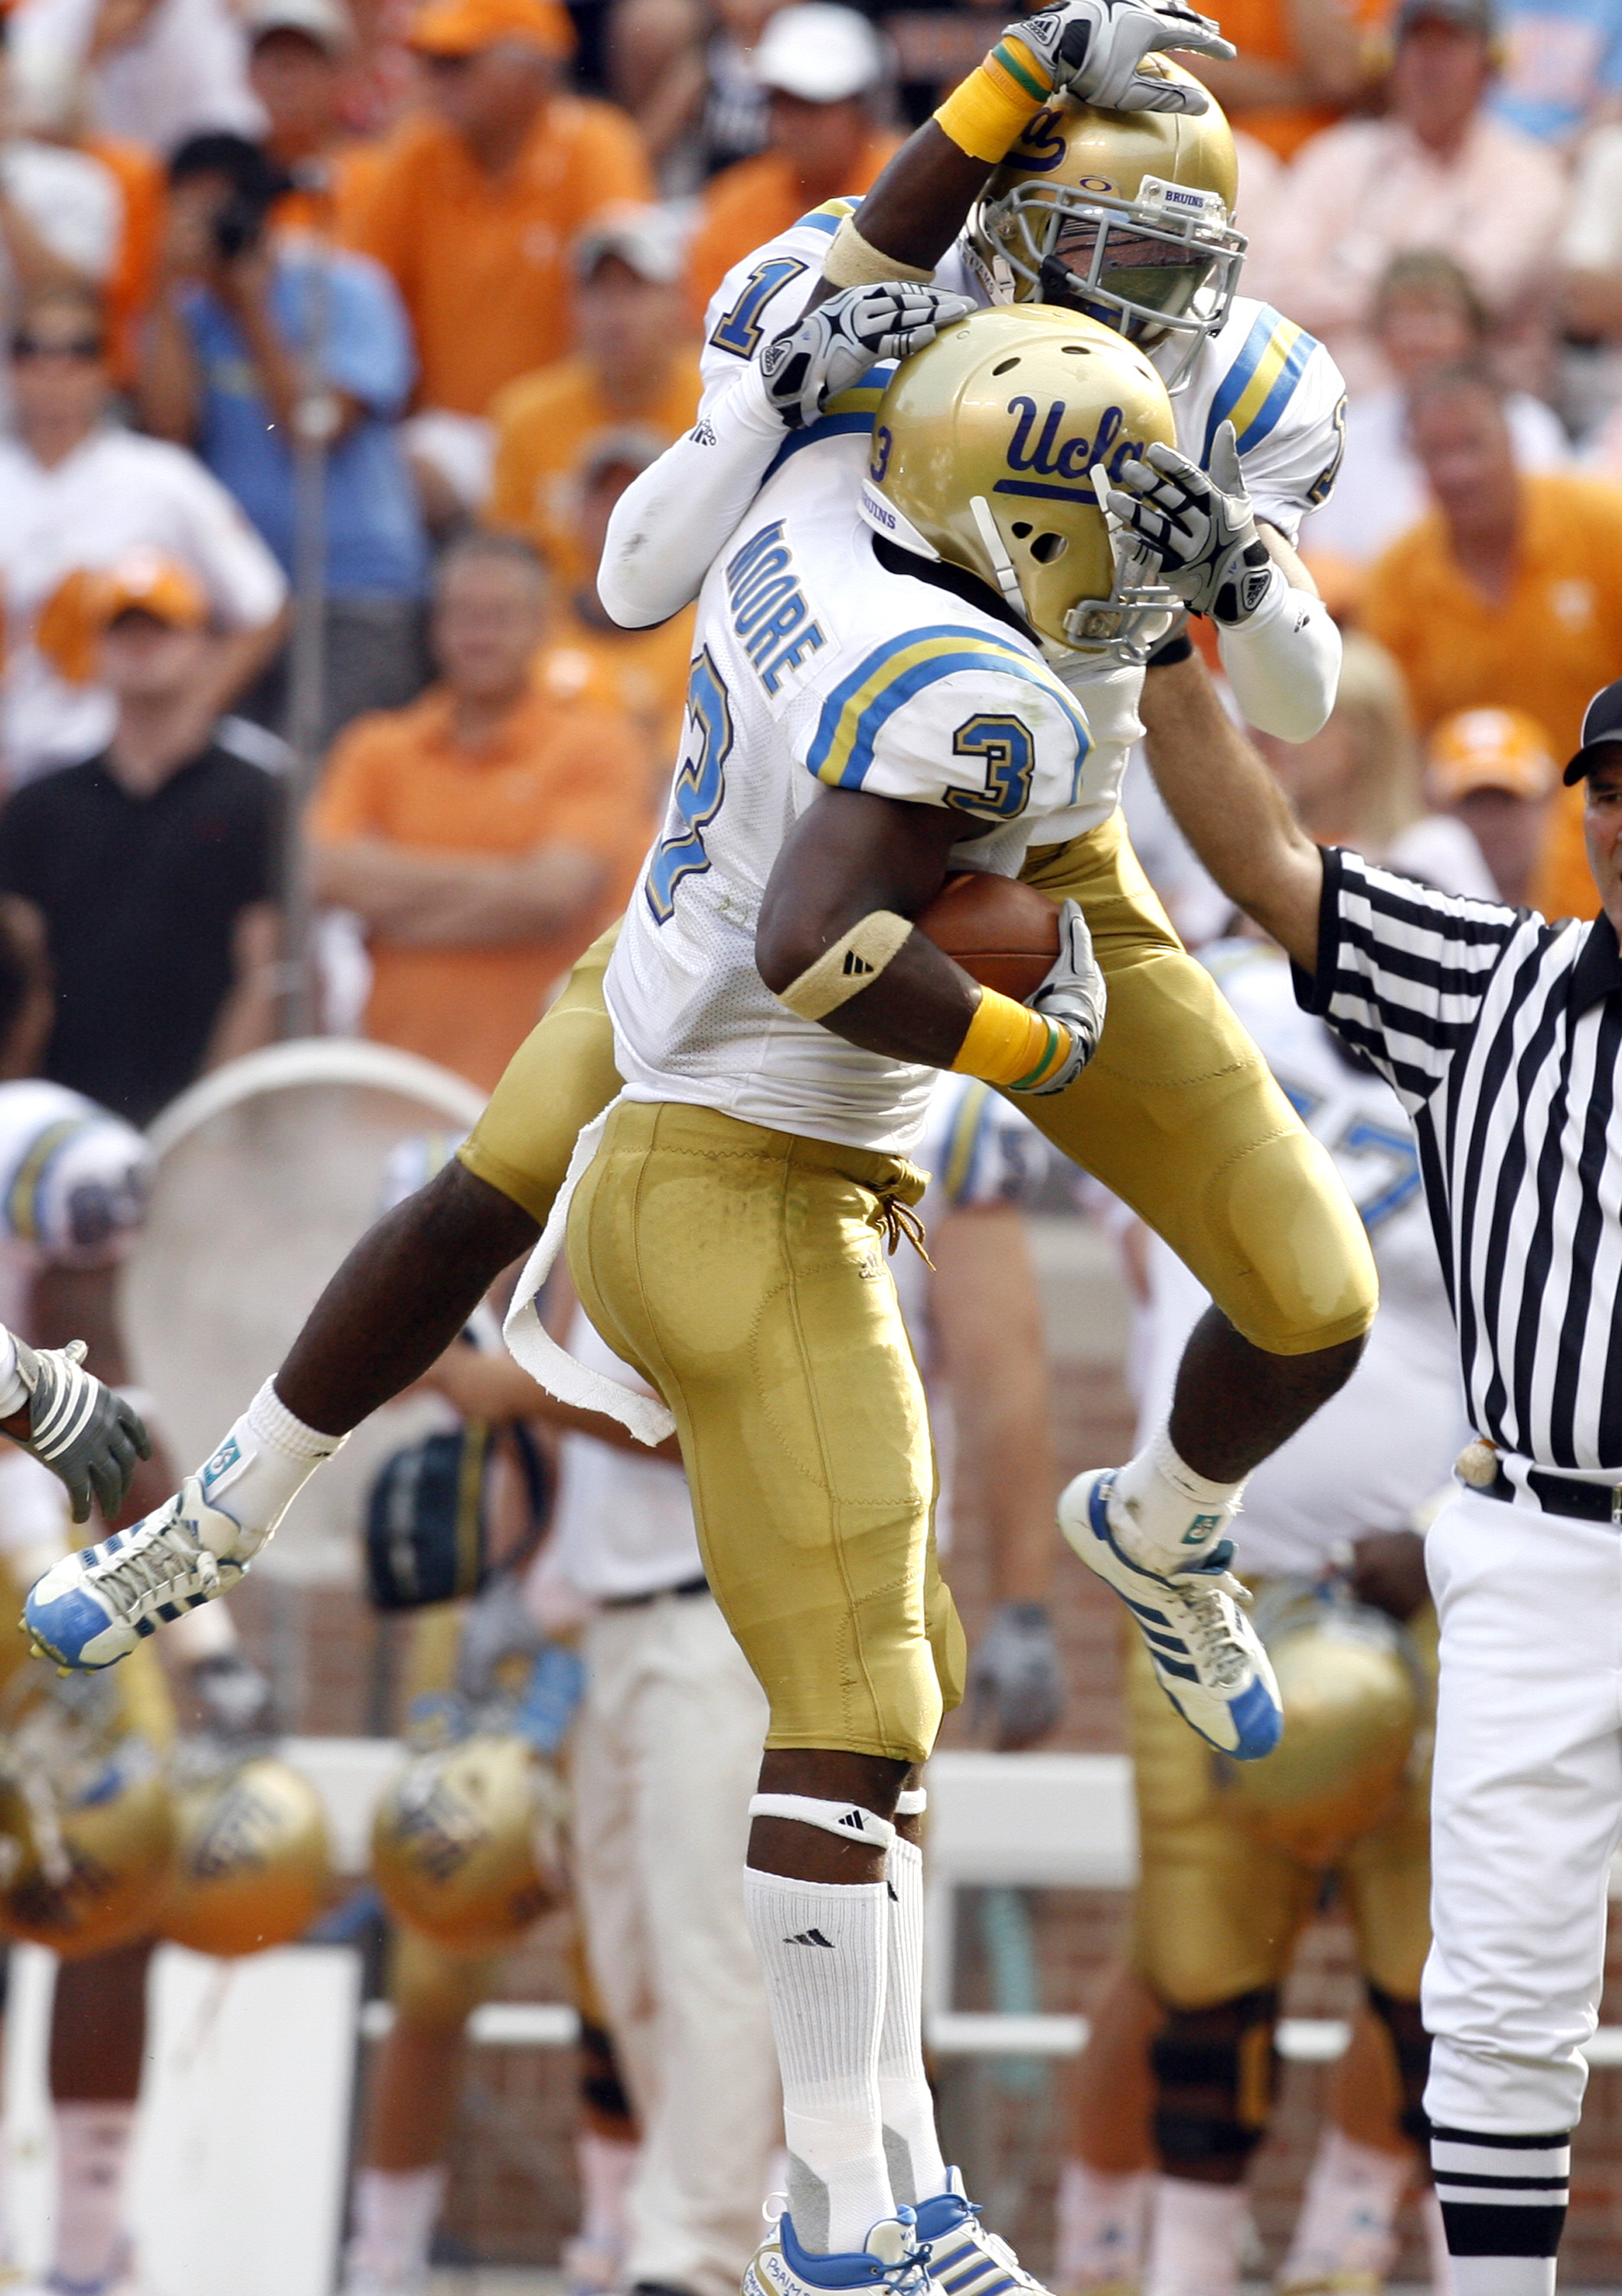 KNOXVILLE, TN - SEPTEMBER 12: Alterraun Verner #1 celebrates the interception by Rahim Moore #3 of the UCLA Bruins against the Tennessee Volunteers on September 12, 2009 at Neyland Stadium in Knoxville, Tennessee. (Photo by Joe Murphy/Getty Images)